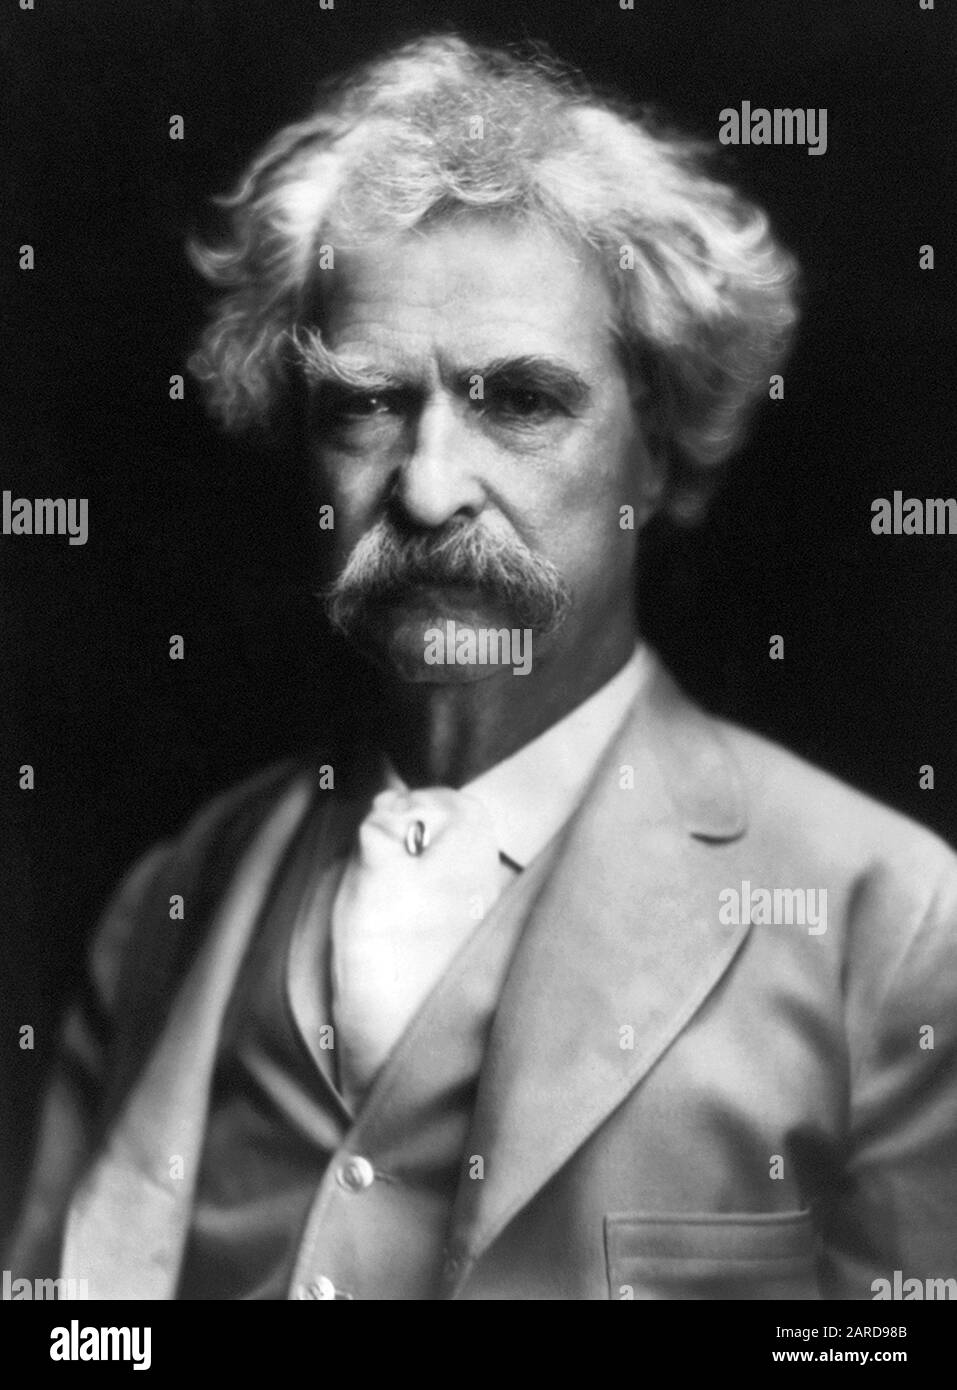 Vintage portrait photo of American writer and humourist Samuel Langhorne Clemens (1835 – 1910), better known by his pen name of Mark Twain. Photo circa 1907. Stock Photo